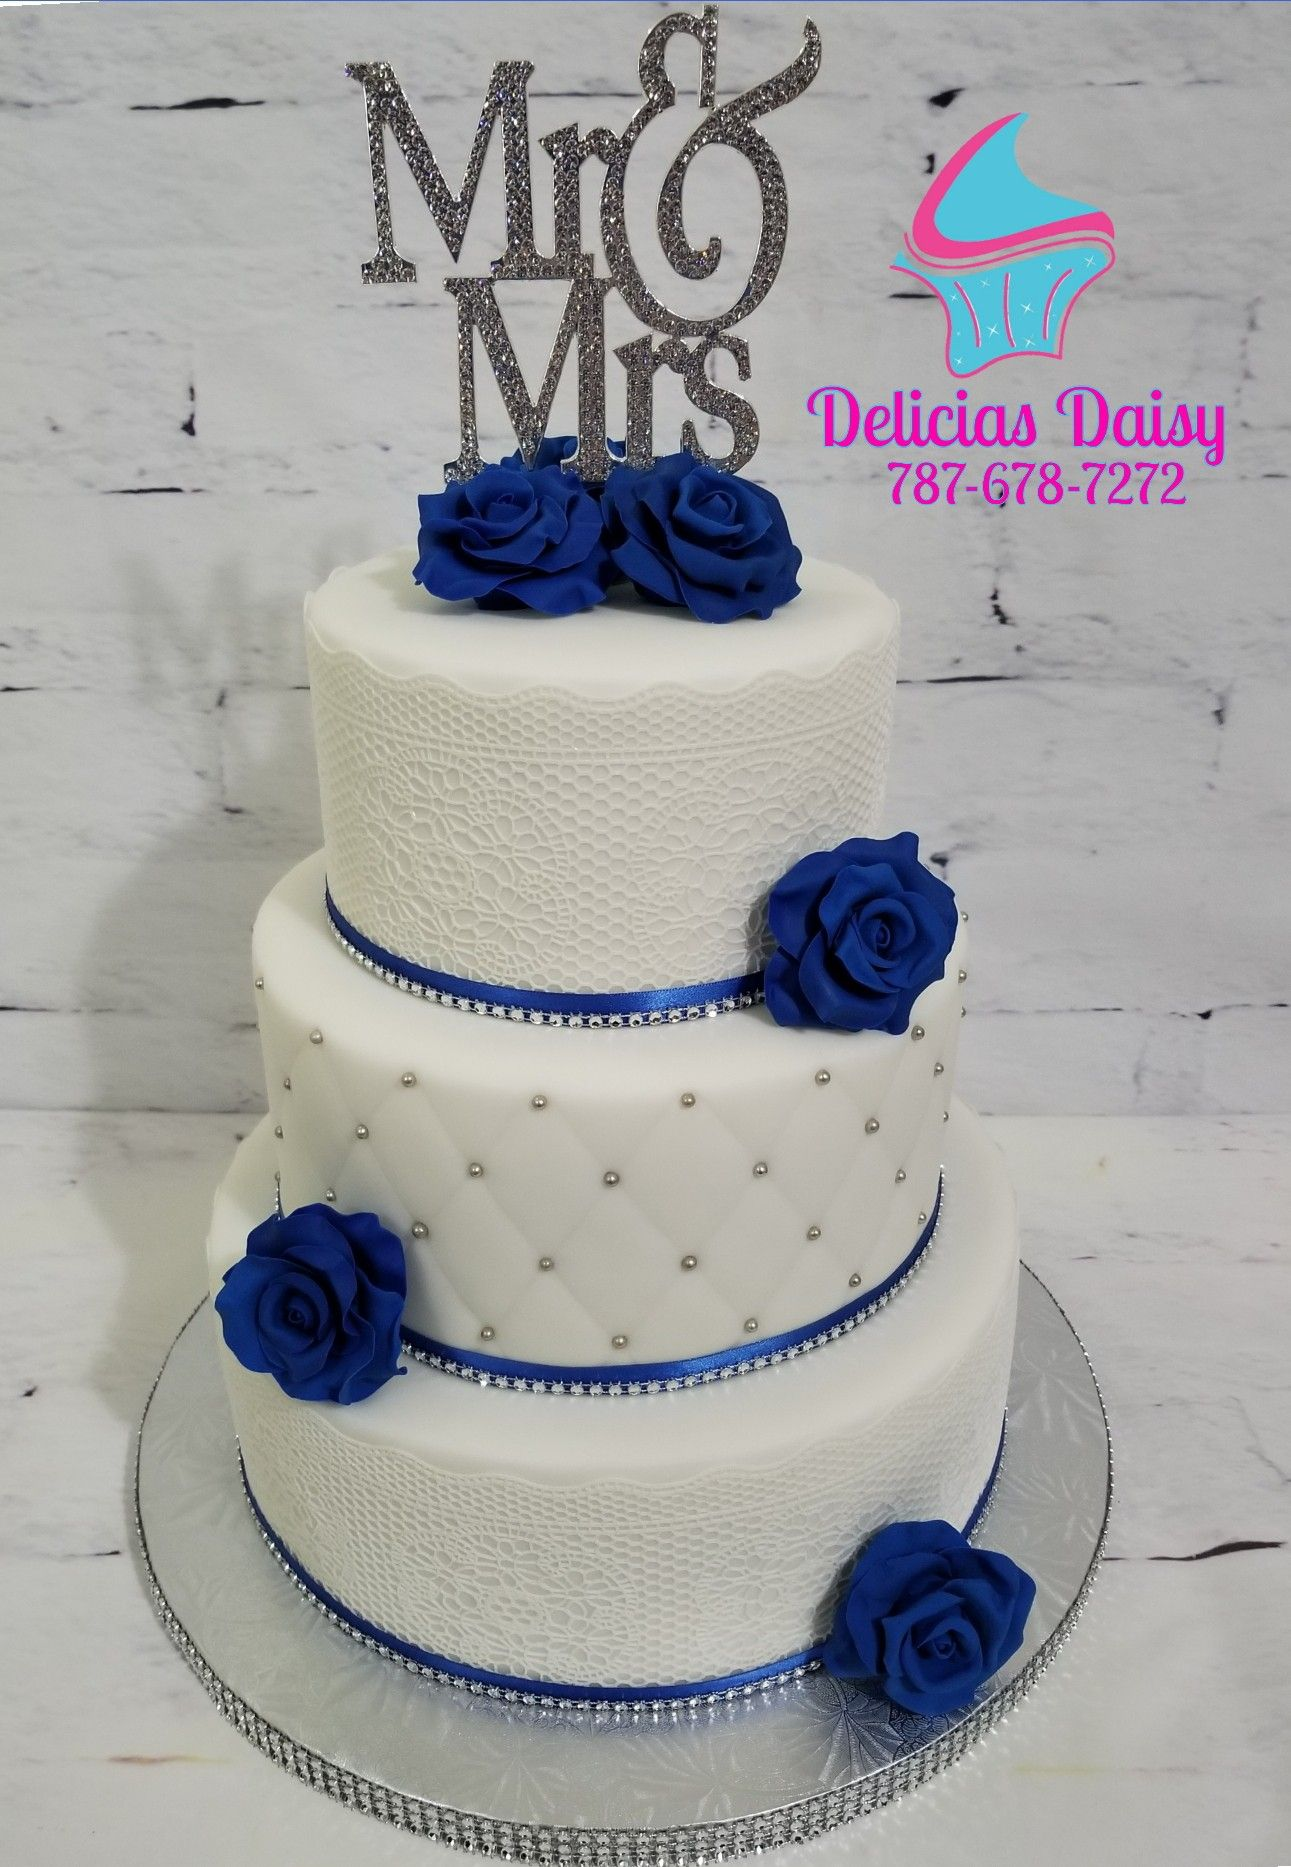 Wedding Cake Sugar Lace And Roses White Silver And Royal Blue Winter Wedding Cake Silver Wedding Cake Wedding Cakes Blue